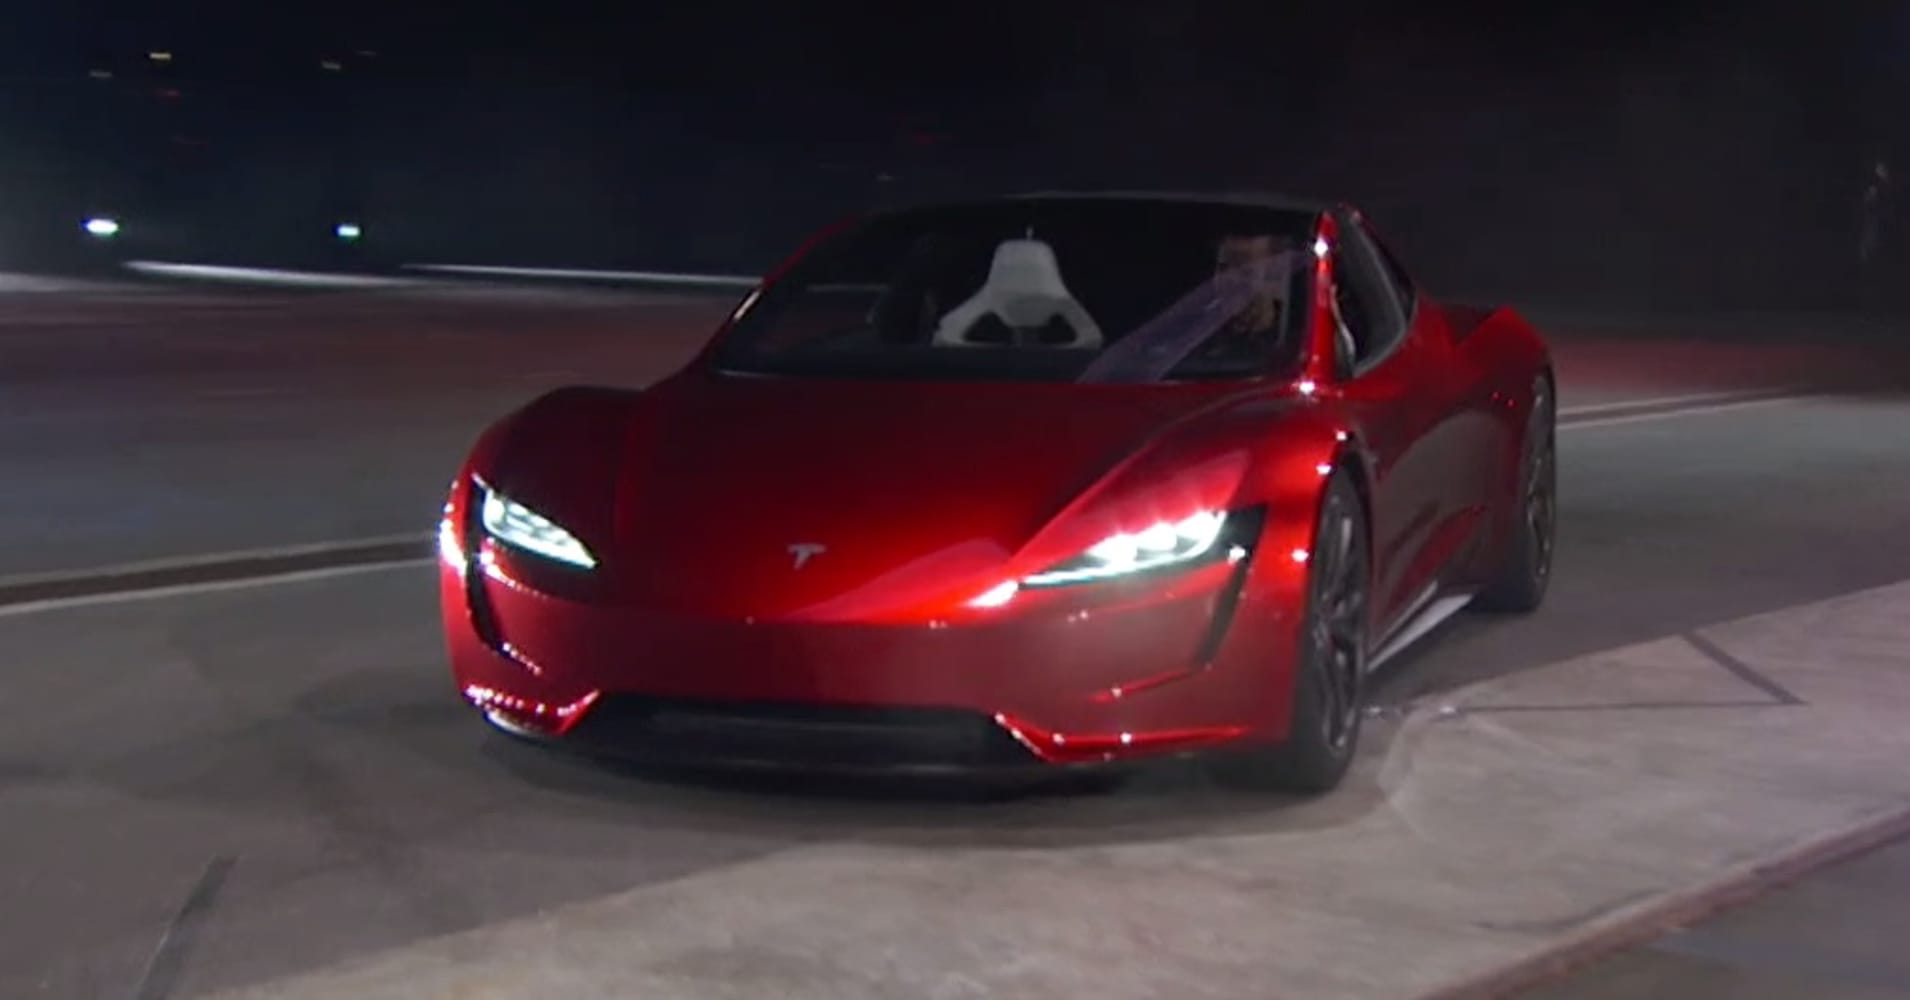 Tesla CEO Elon Musk Unveils A Surprise New Car A New Roadster - Fast car photo